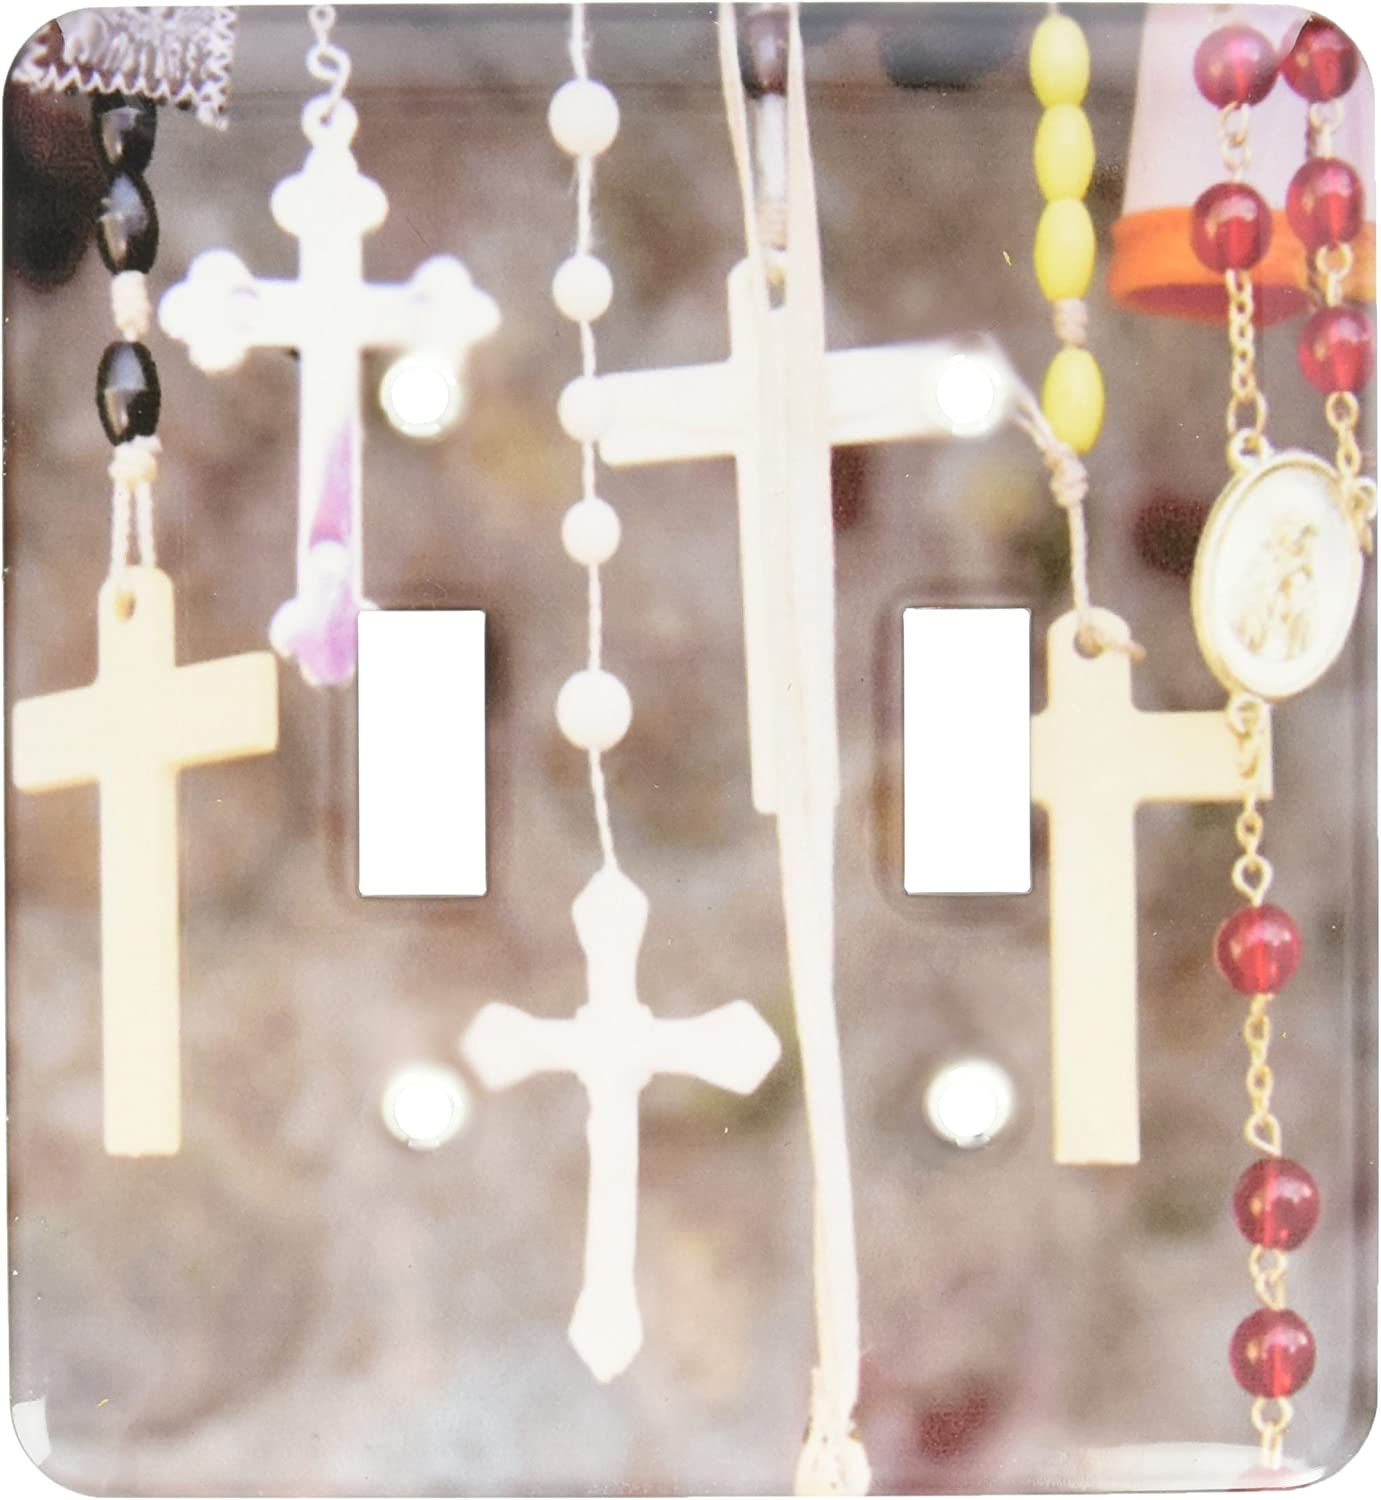 3drose Lsp 92646 2 Crosses Rosaries Christianity New Mexico Us32 Jmr0200 Julien Mcroberts Double Toggle Switch Multi Switch Plates Amazon Com